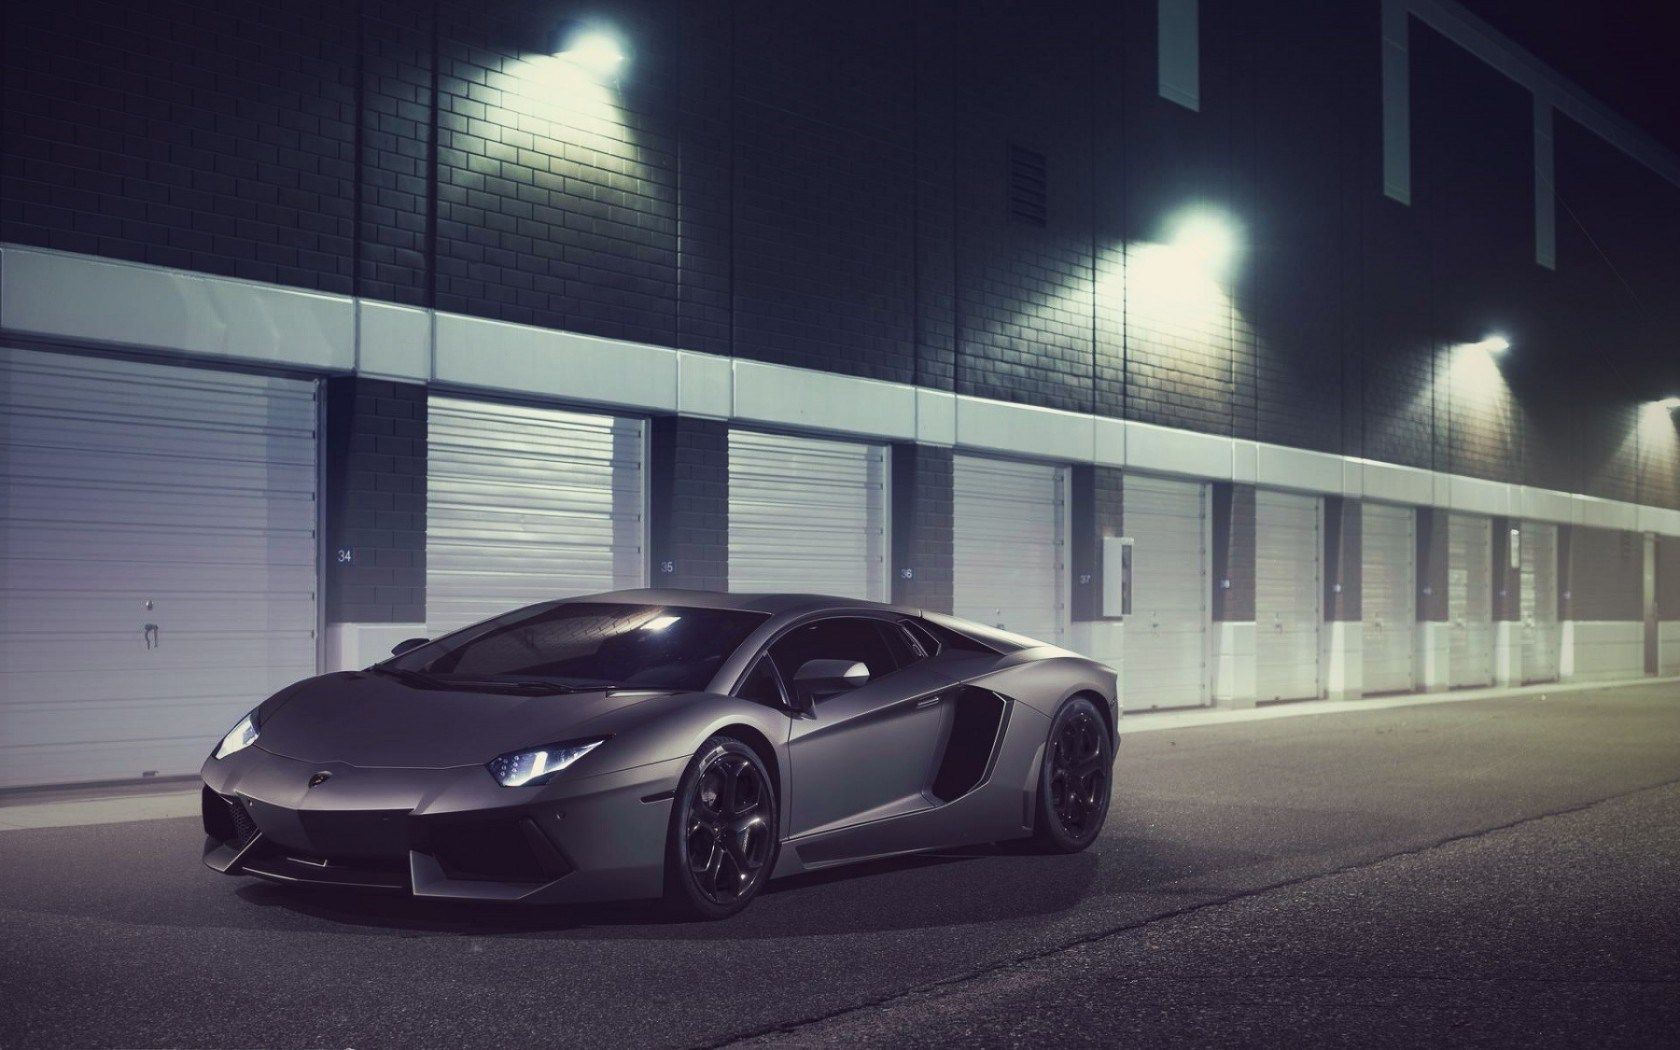 Popular Wallpaper Night Lamborghini - d8a03c6971bbcf0b52a64c72713d0362  Pic-467360.jpg